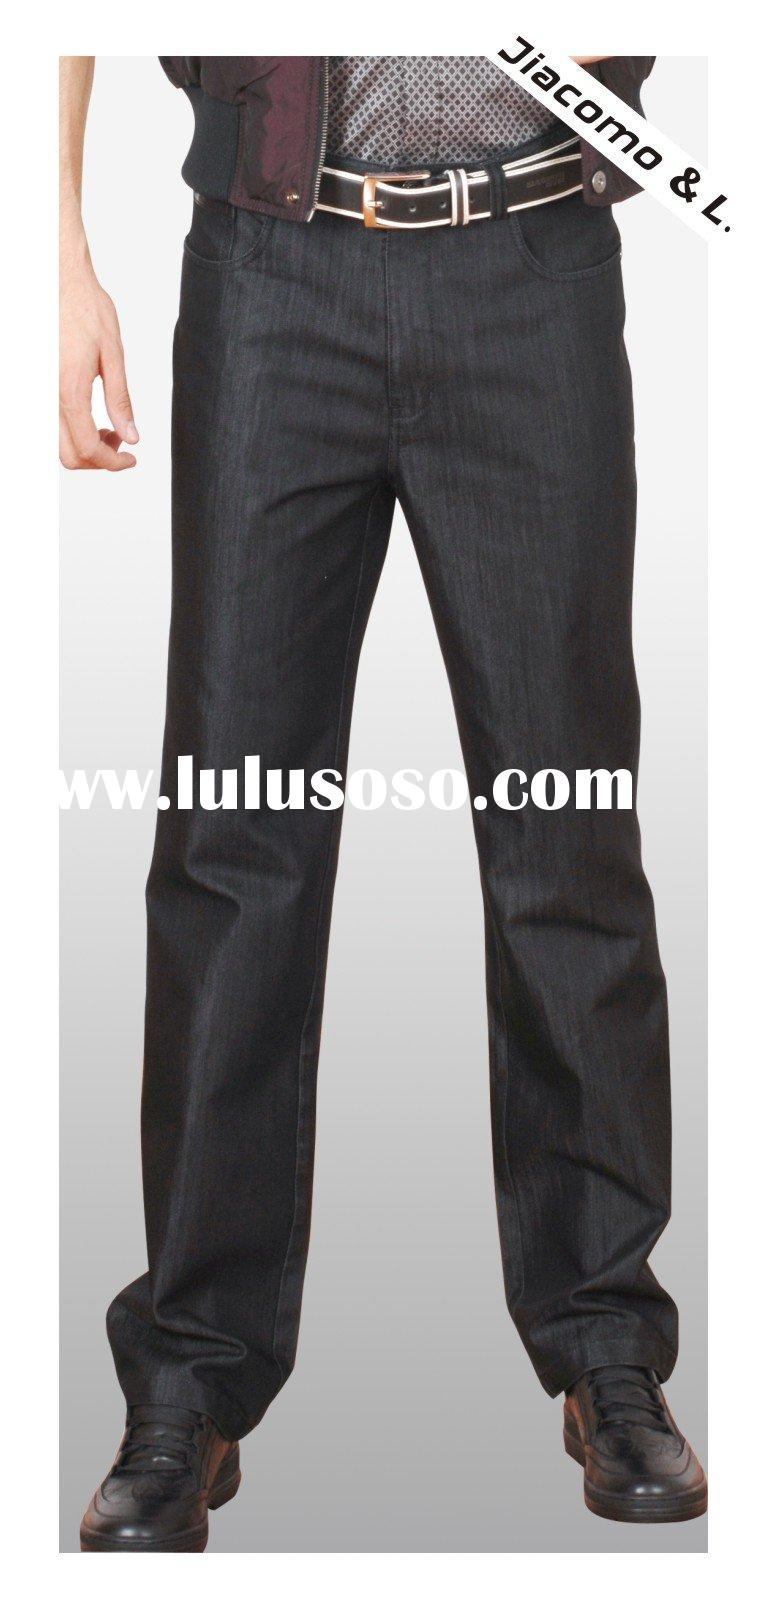 2011 New Style Men's jeans